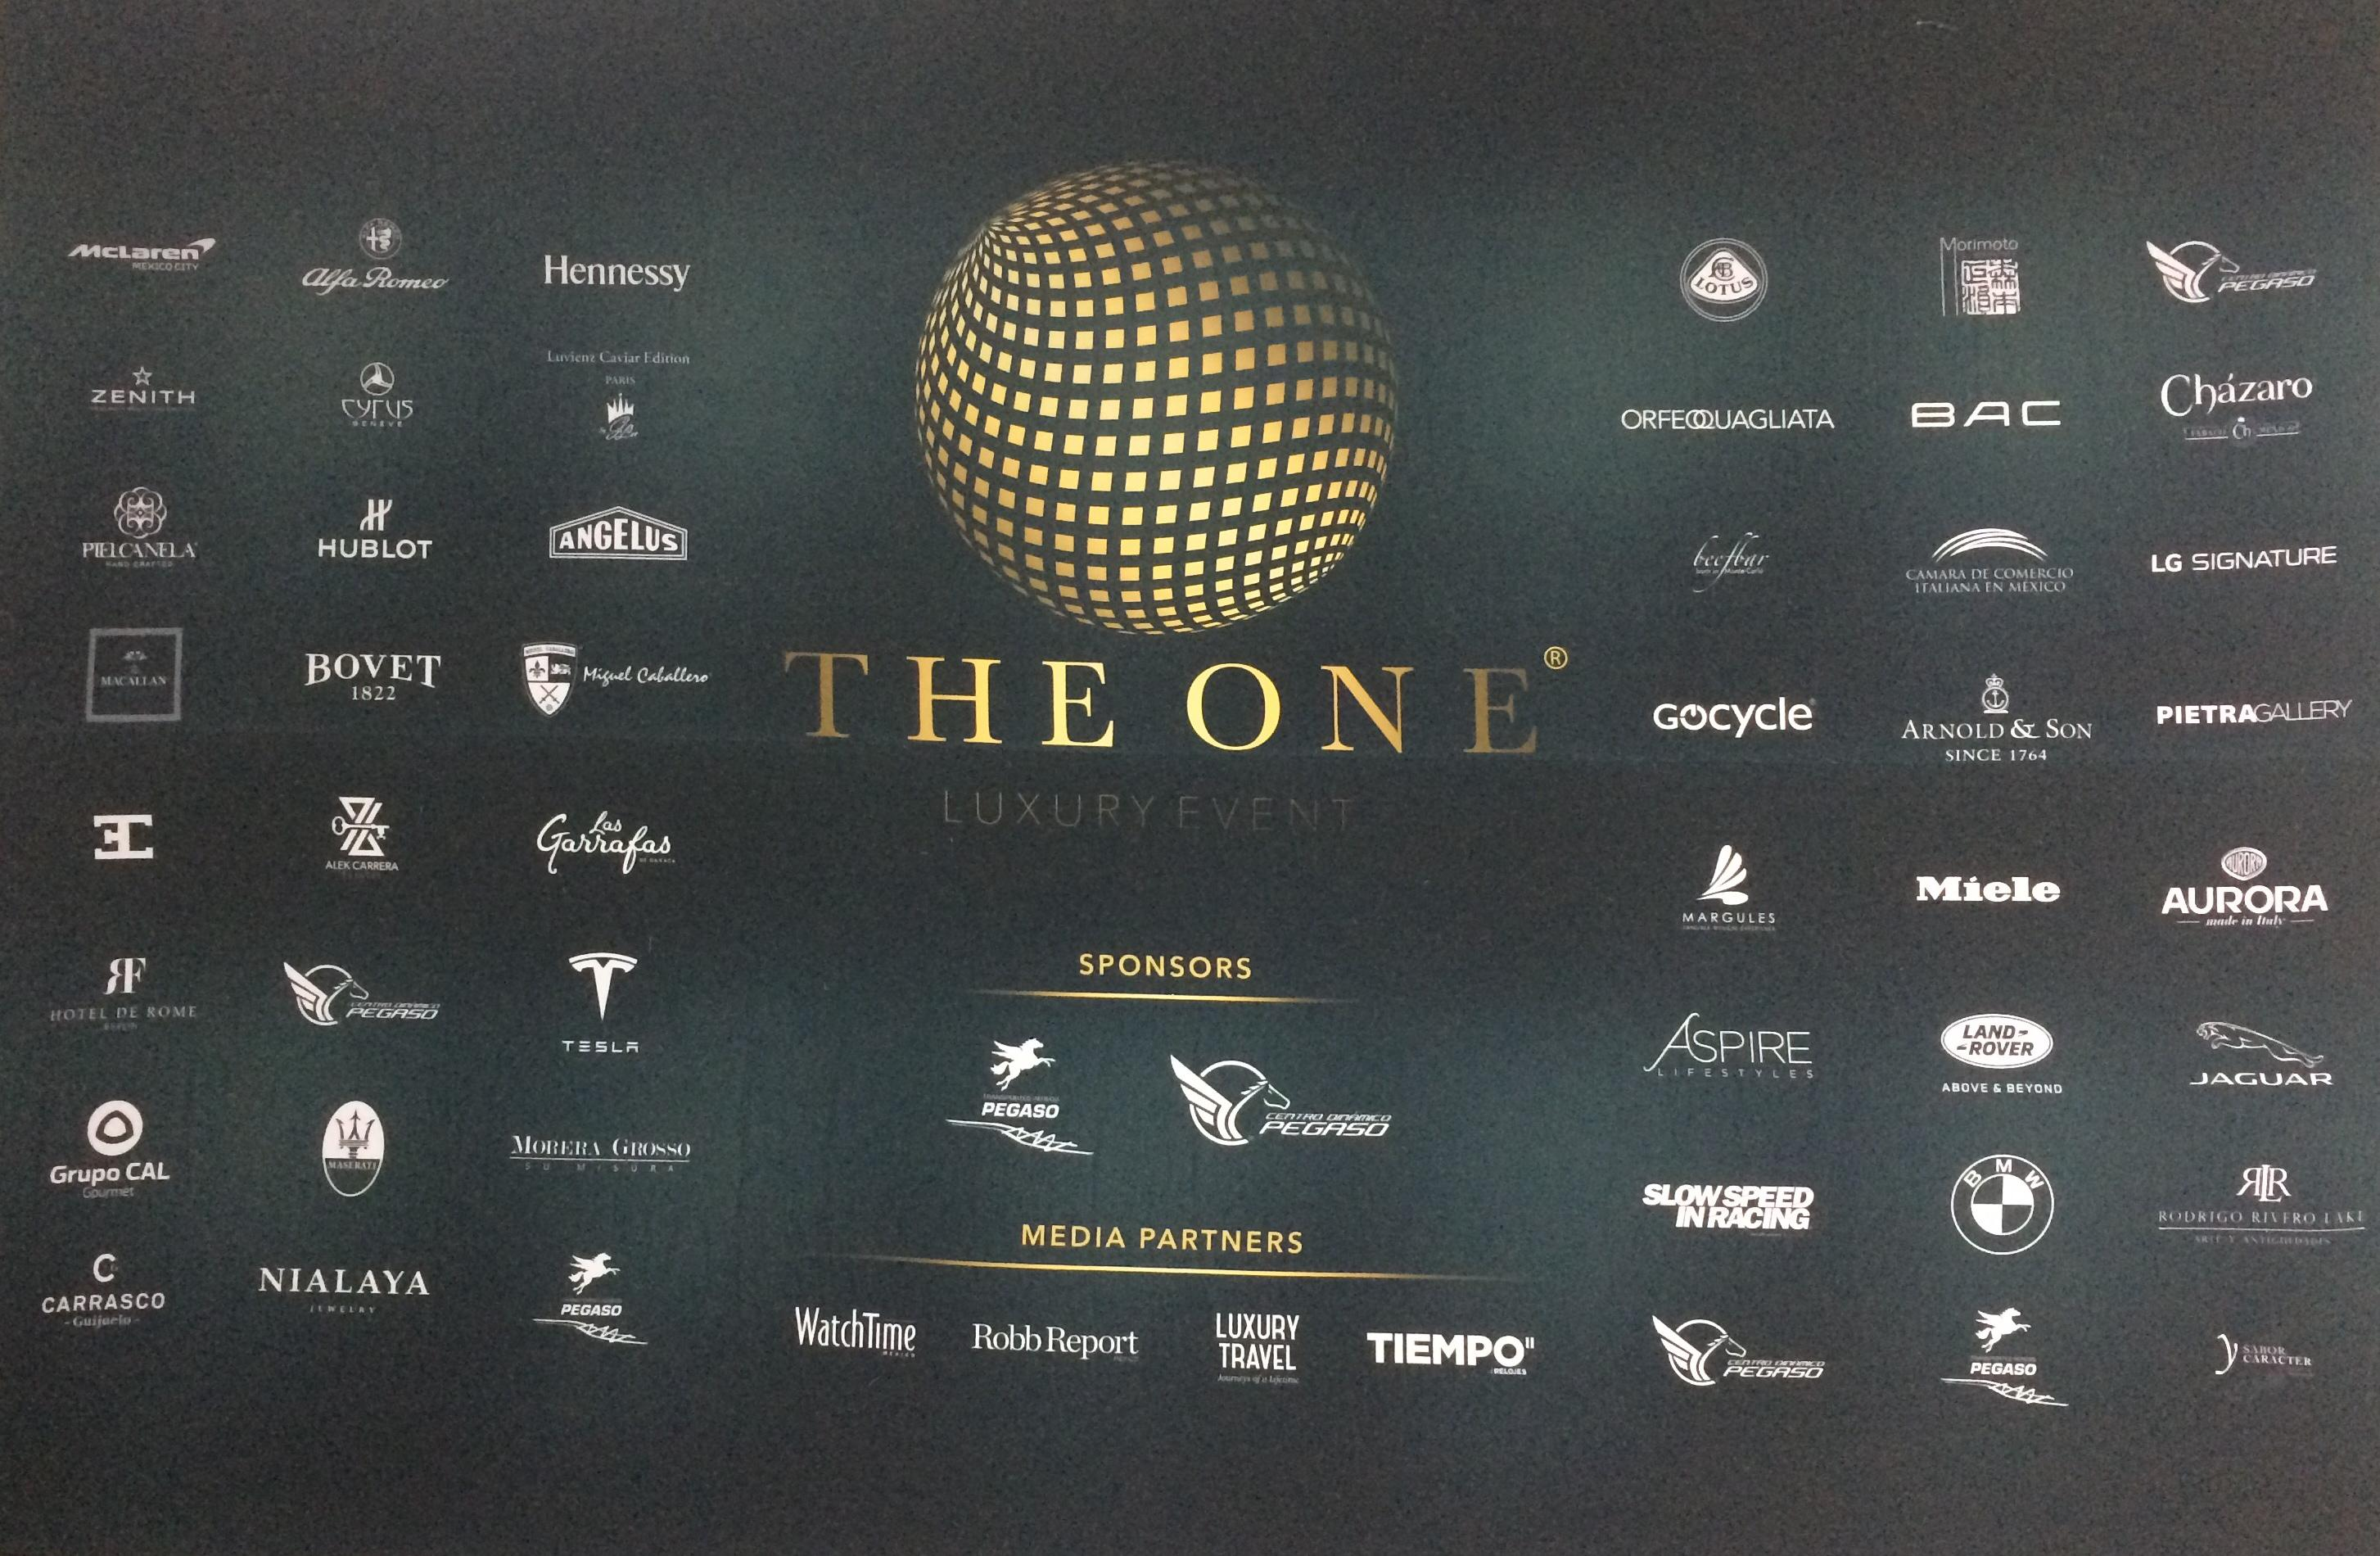 THE ONE – Luxury Event